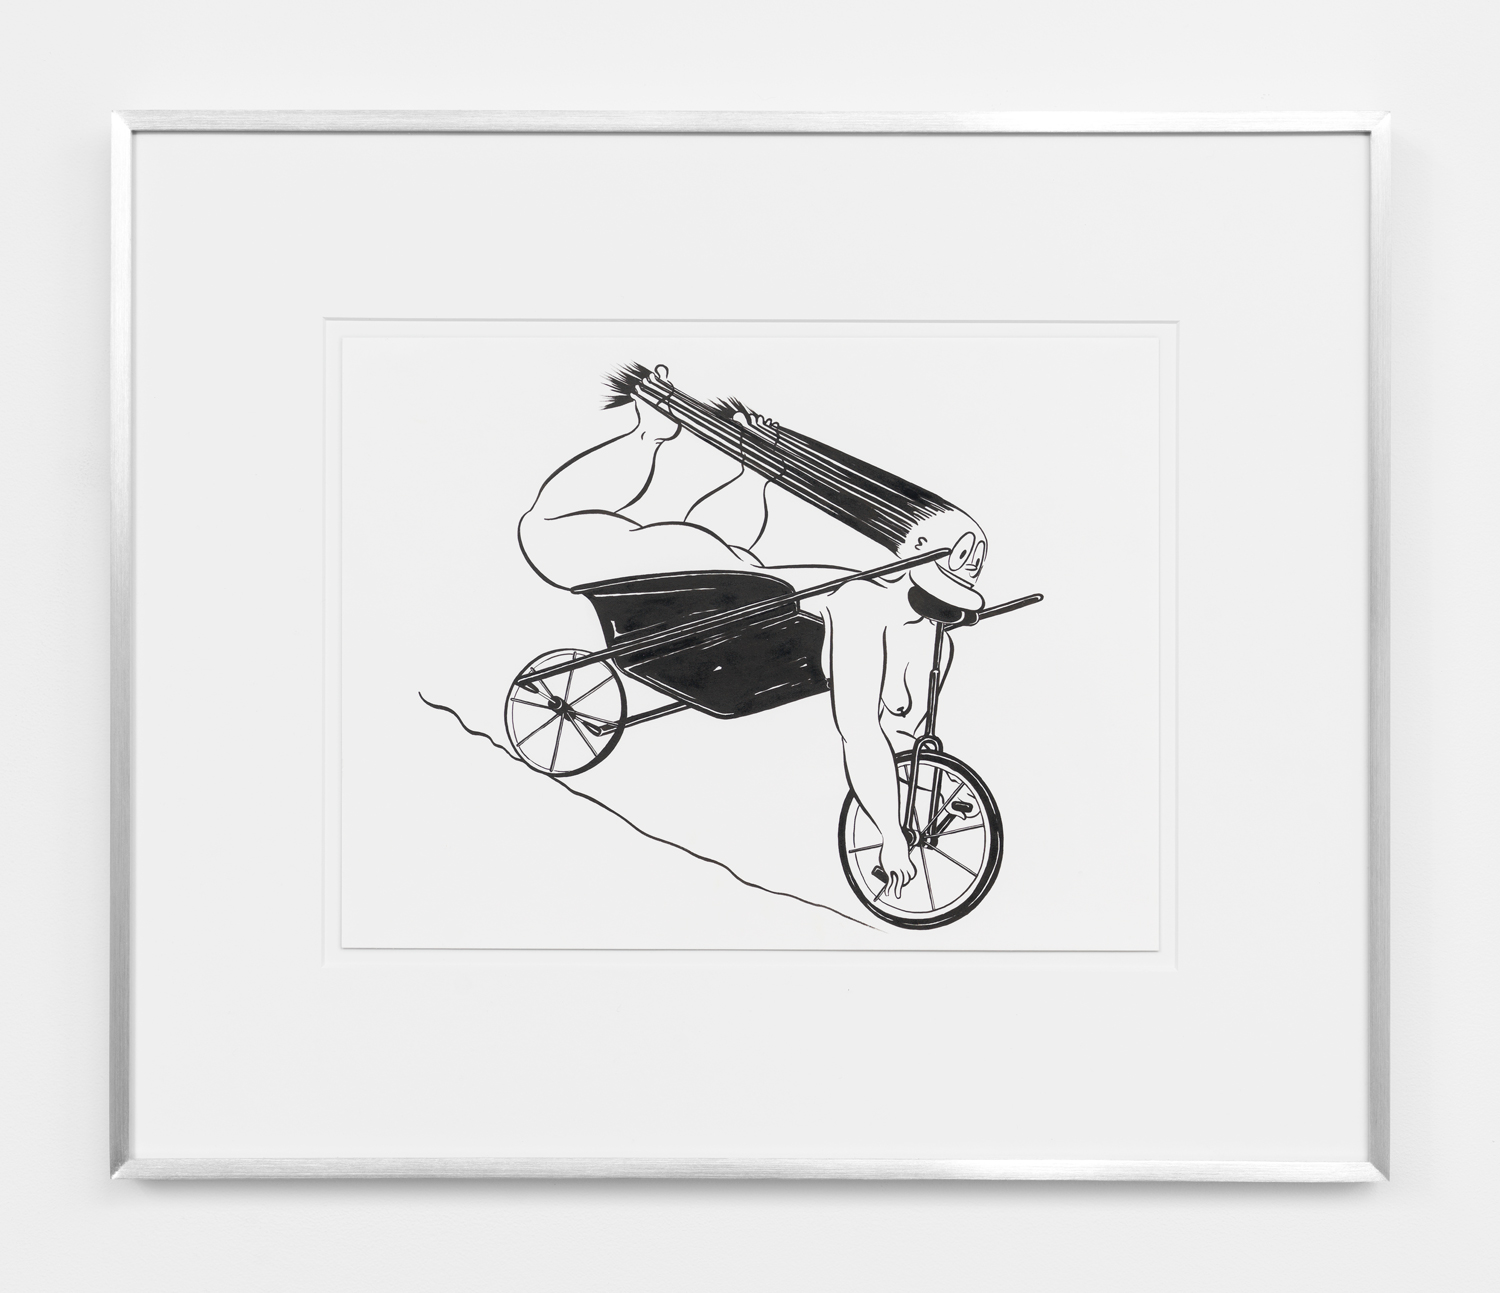 Ebecho Muslimova, Fatebe Wheelbarrow Unicycle, 2017, ink on paper, 9h x 12w in.